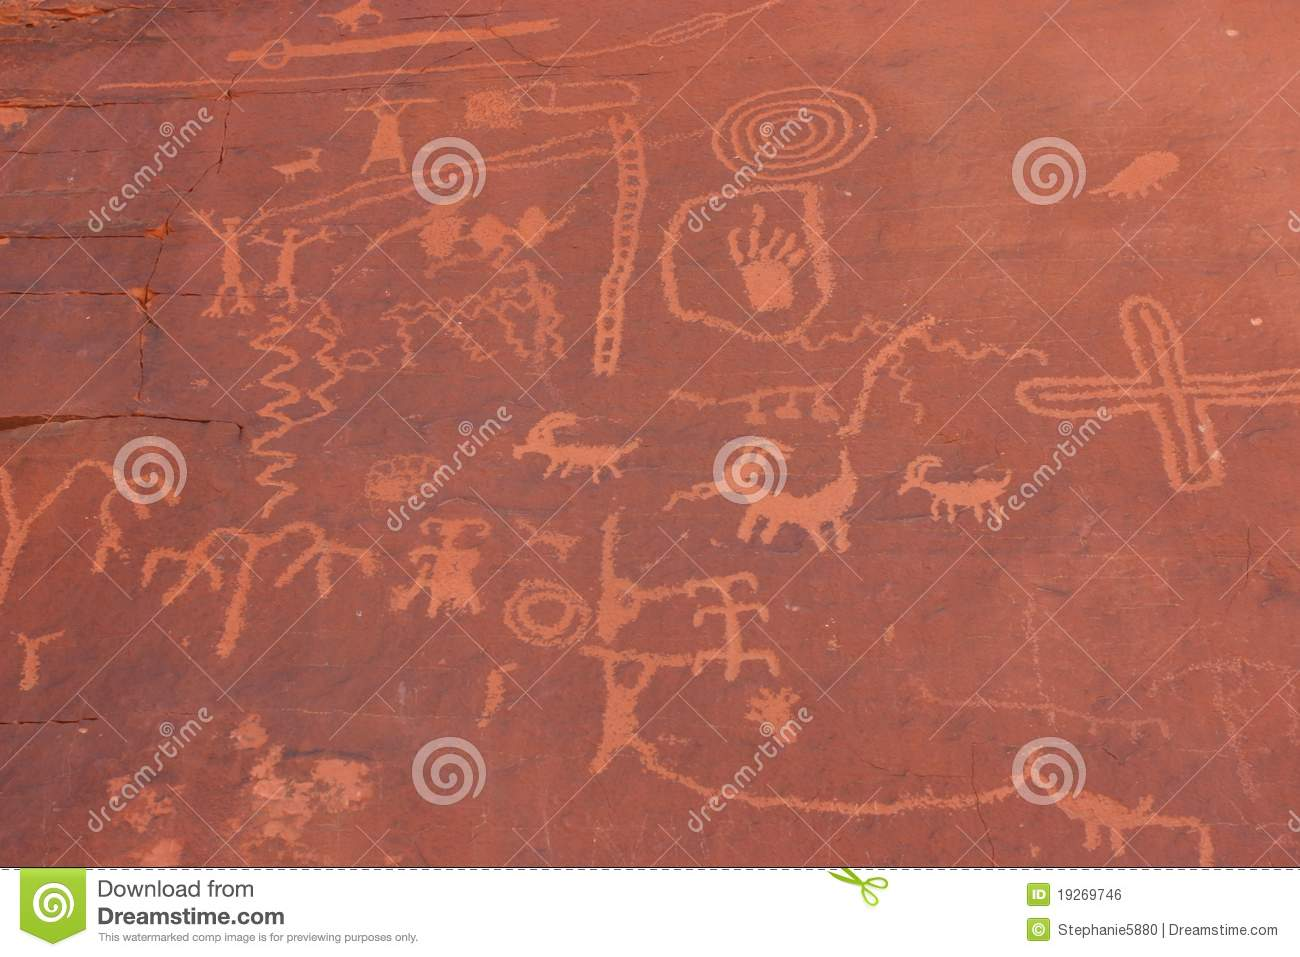 Native American Indian Writing On Rock Royalty Free Stock